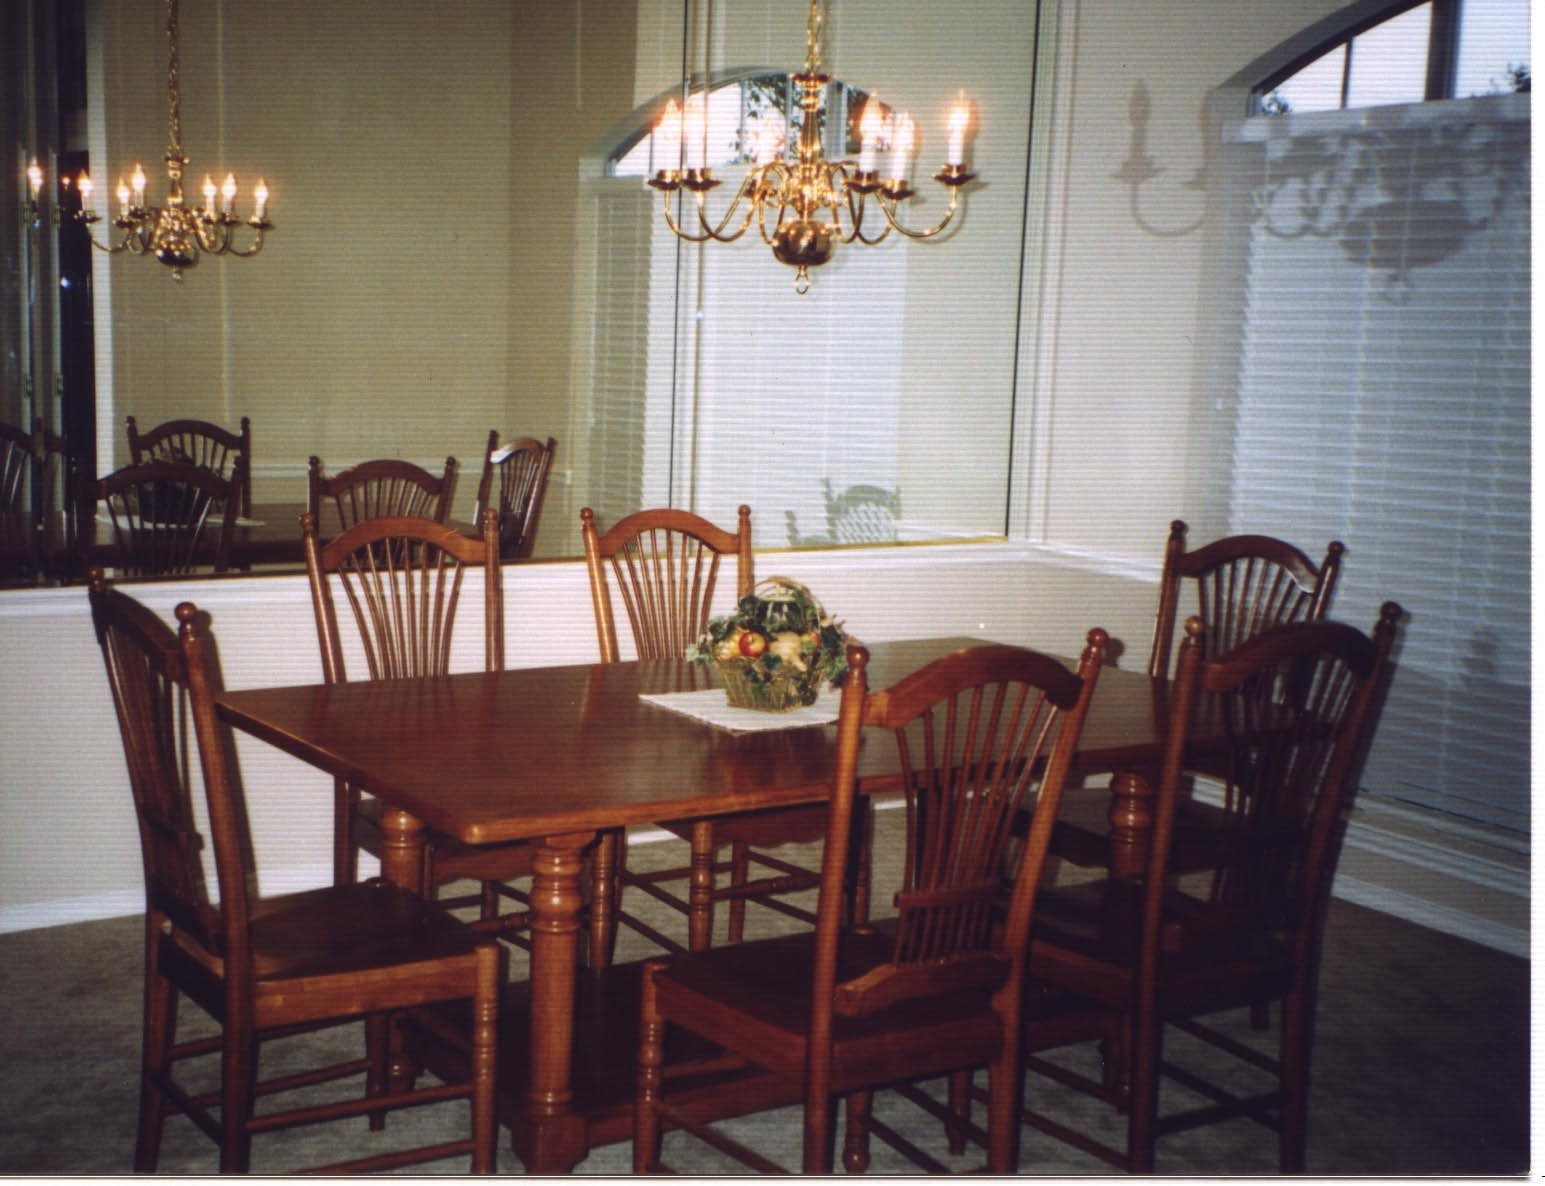 Full Wall Mirror Dining Room Full Wall Mirror Dining Room dining room mirror beautiful pictures photos of remodeling 1545 X 1186